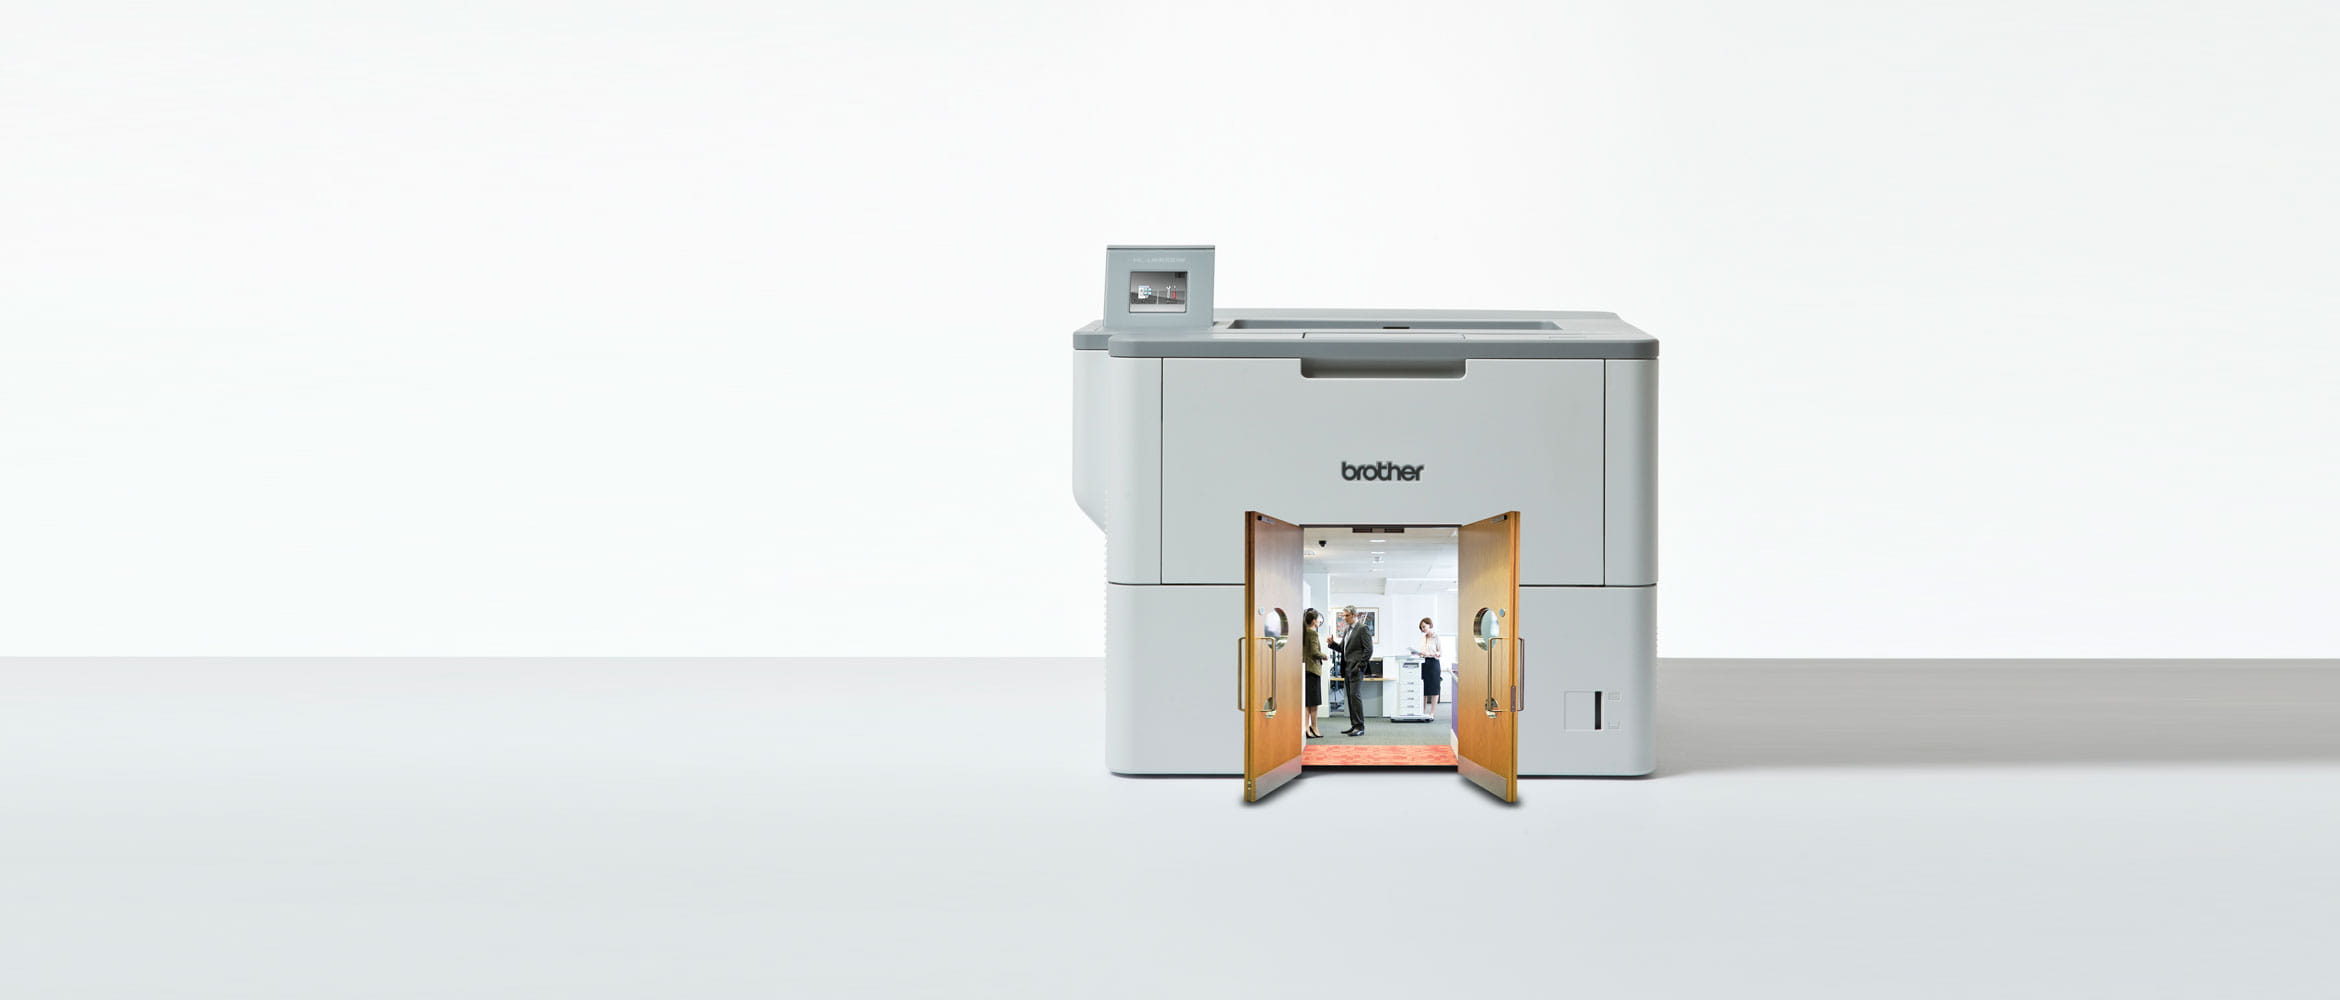 Brother printer with picture inside